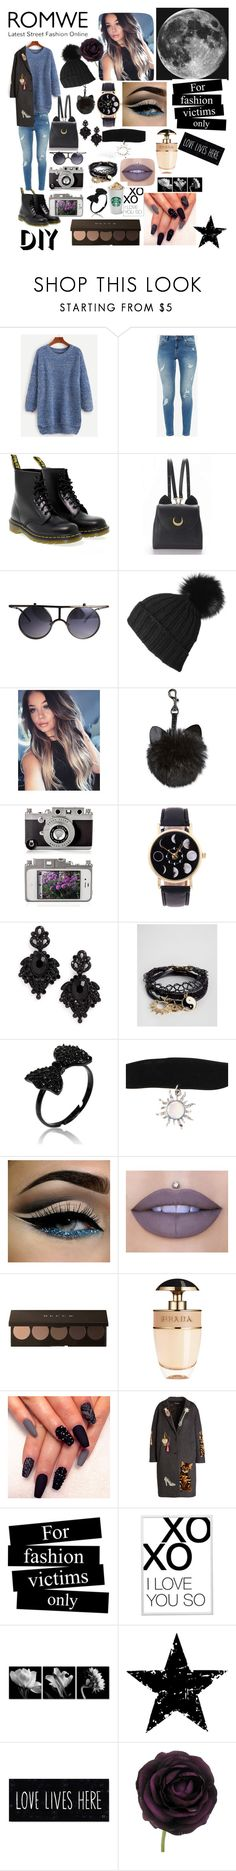 """""""The dreams come true!🌙🌠🌠🌛🌟☄😙"""" by miruna1-1 ❤ liked on Polyvore featuring Ted Baker, Dr. Martens, Black, Tasha, ASOS, Jeffree Star, Prada, Dolce&Gabbana, xO Design and Tim Holtz"""